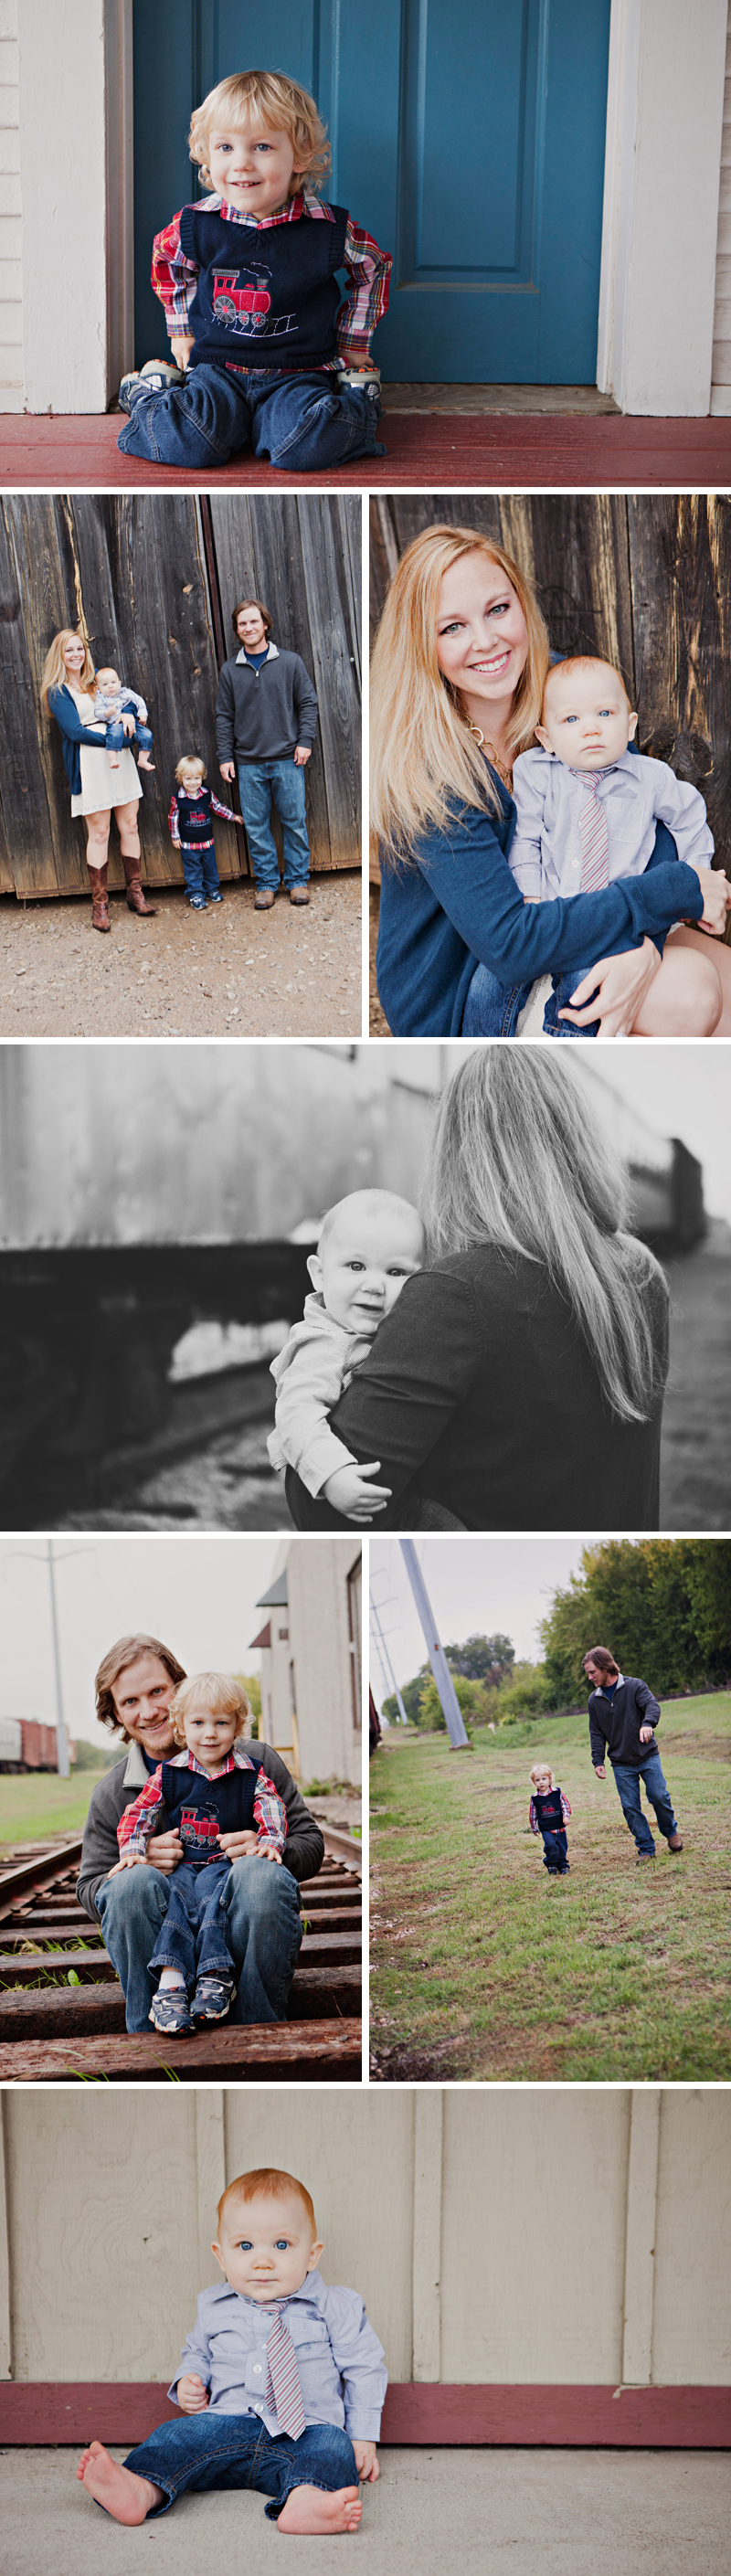 Dallas-Family-Photographerc038